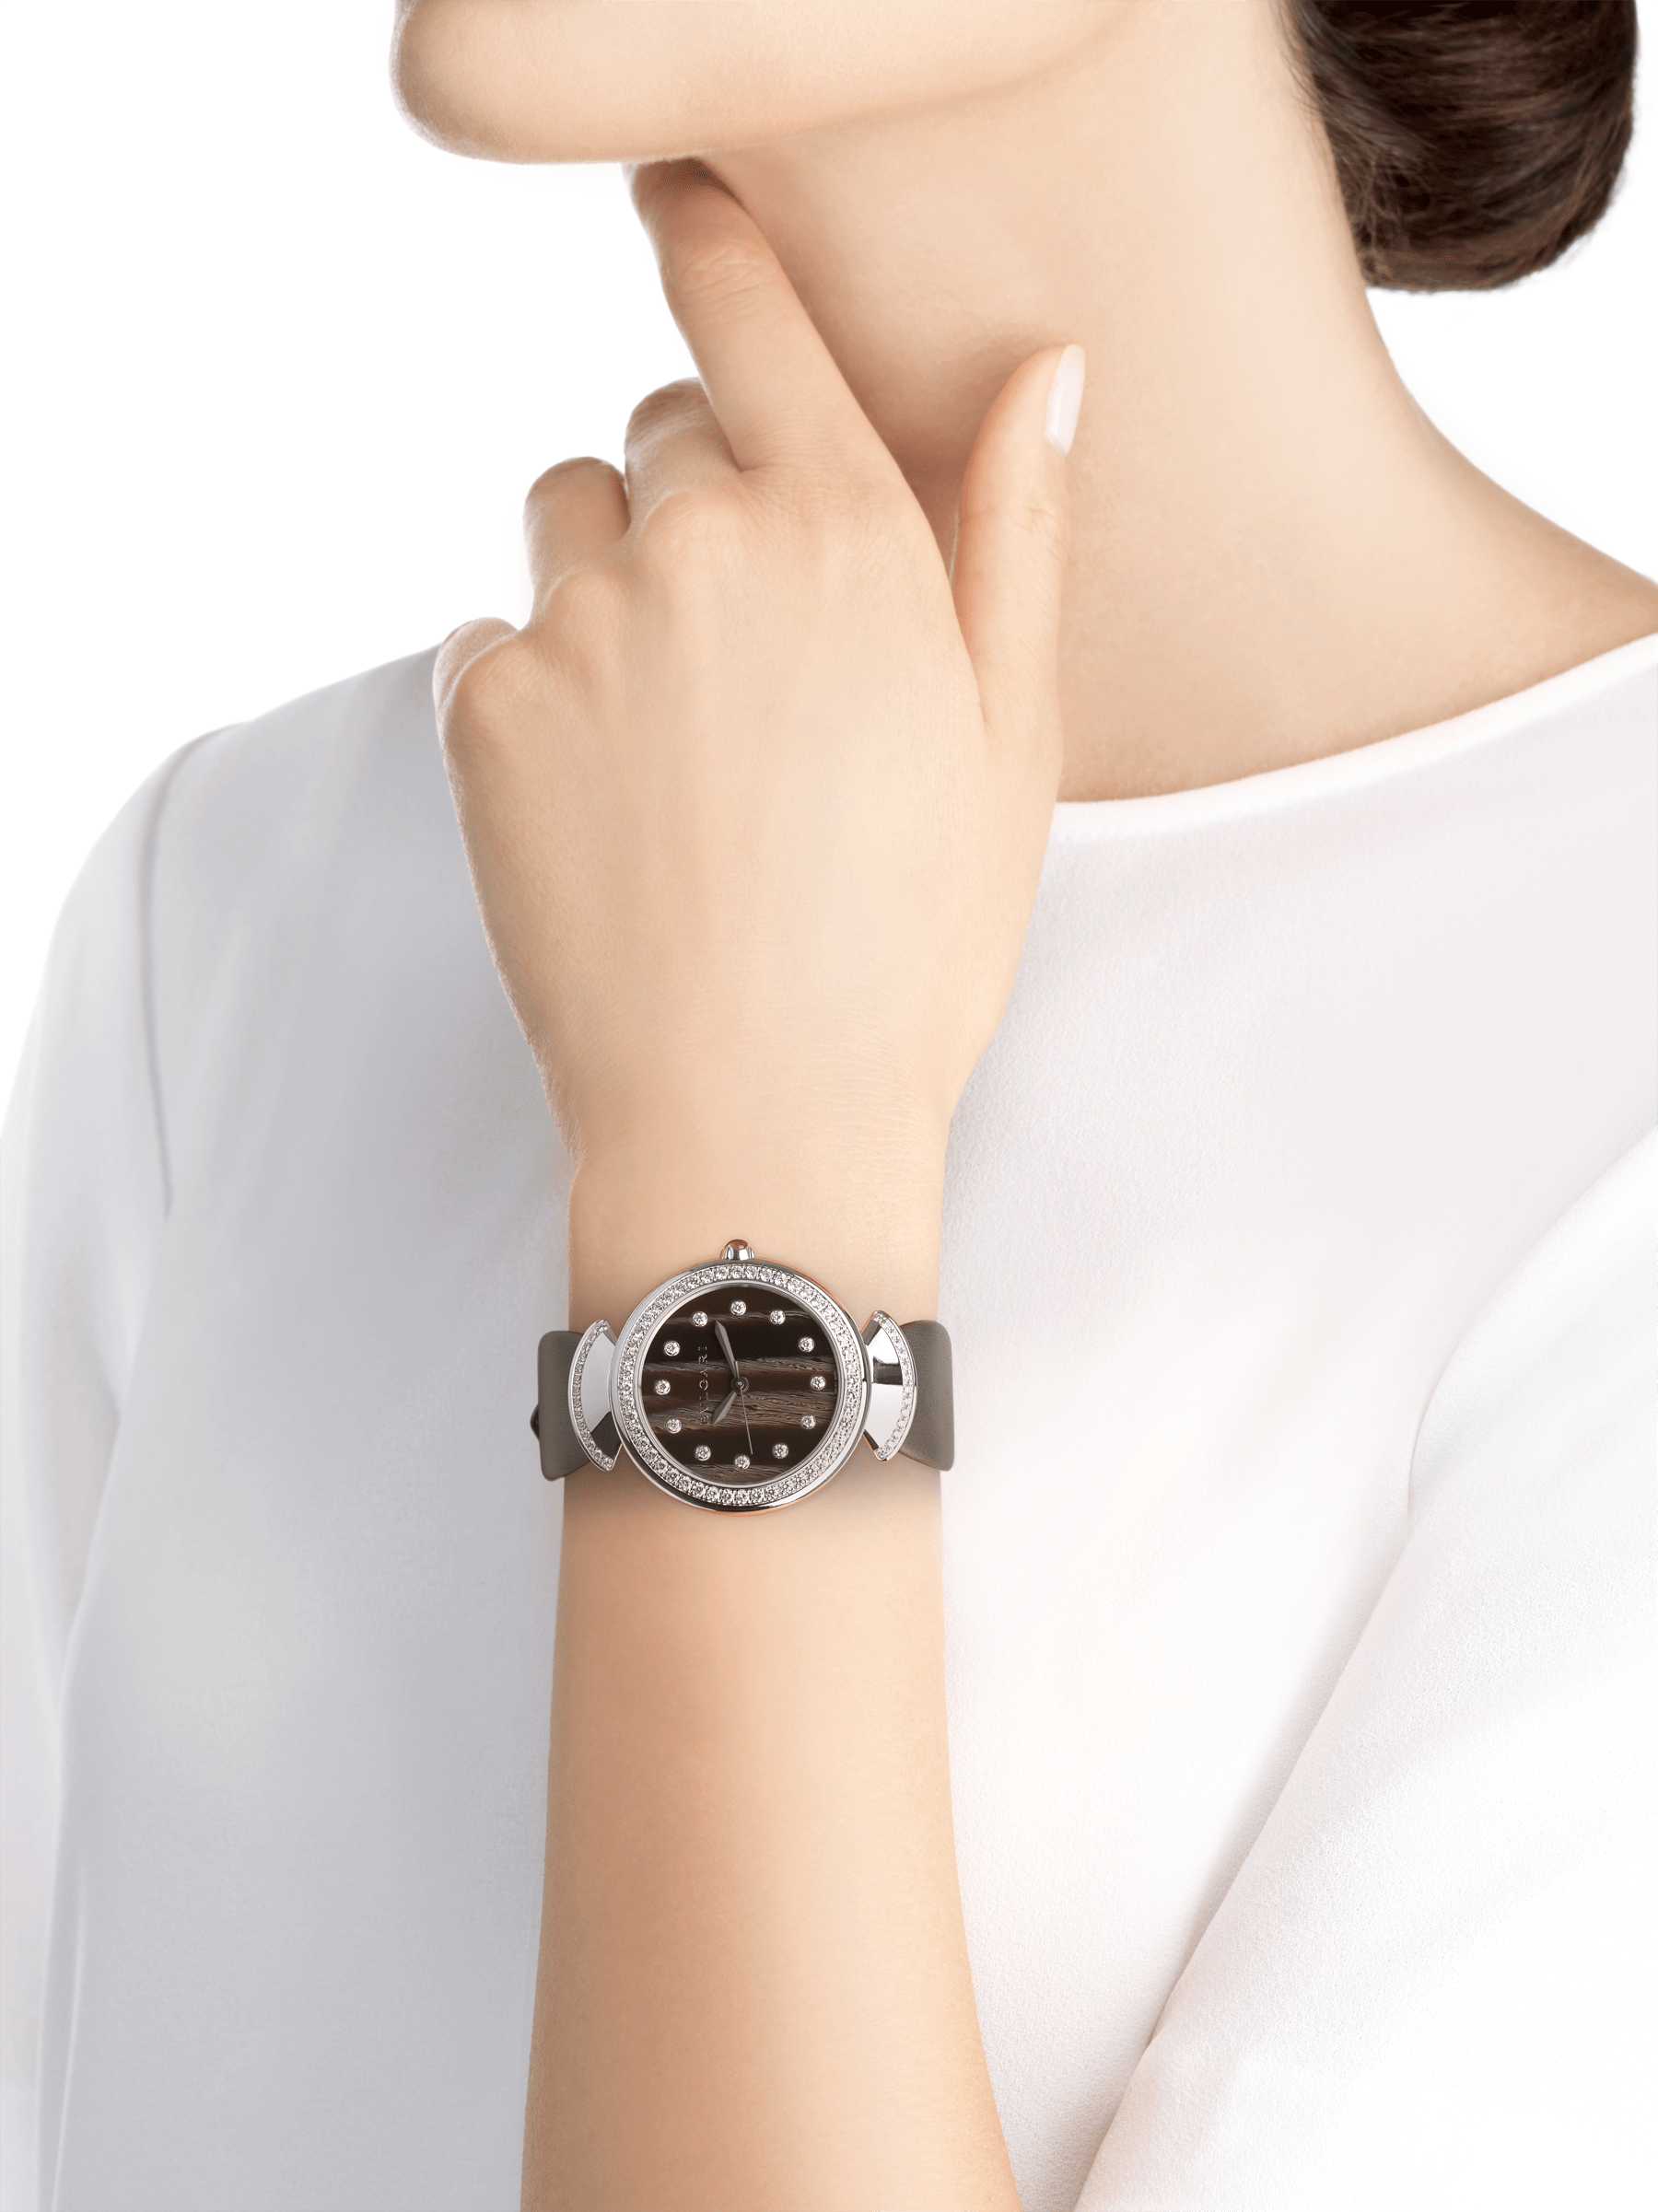 DIVAS' DREAM watch with 18 kt white gold case set with brilliant-cut diamonds, acetate dial, diamond indexes and grey satin bracelet 102576 image 5